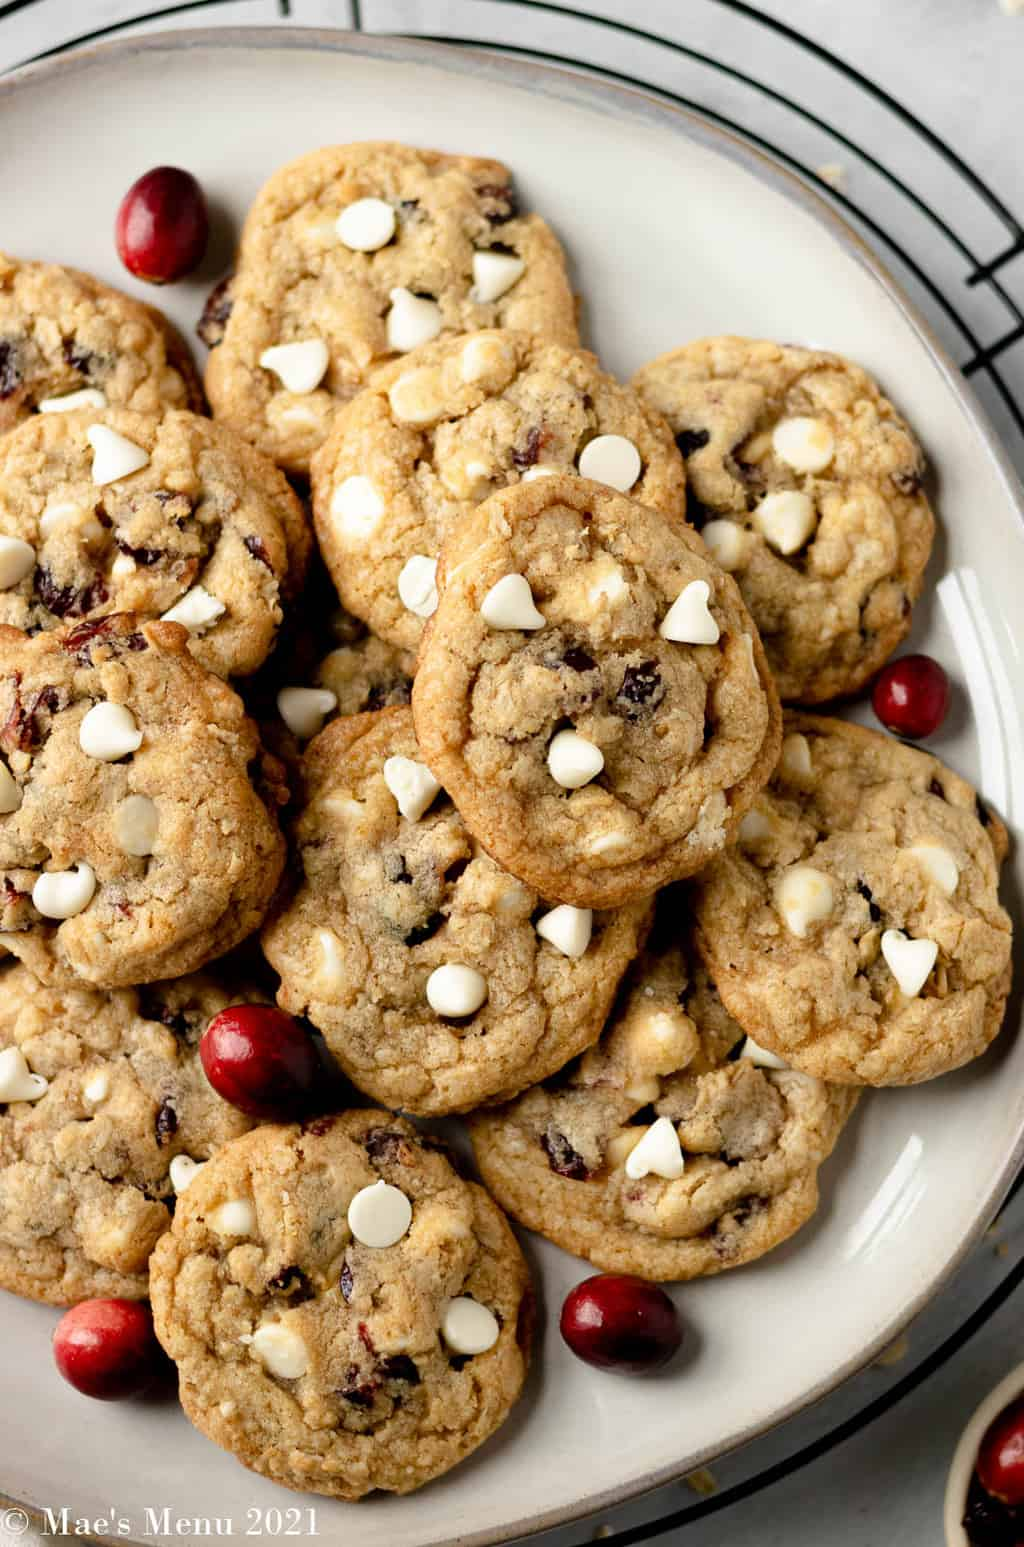 An up-close overhead shot of a white plate of white chocolate chip cookies with cranberries